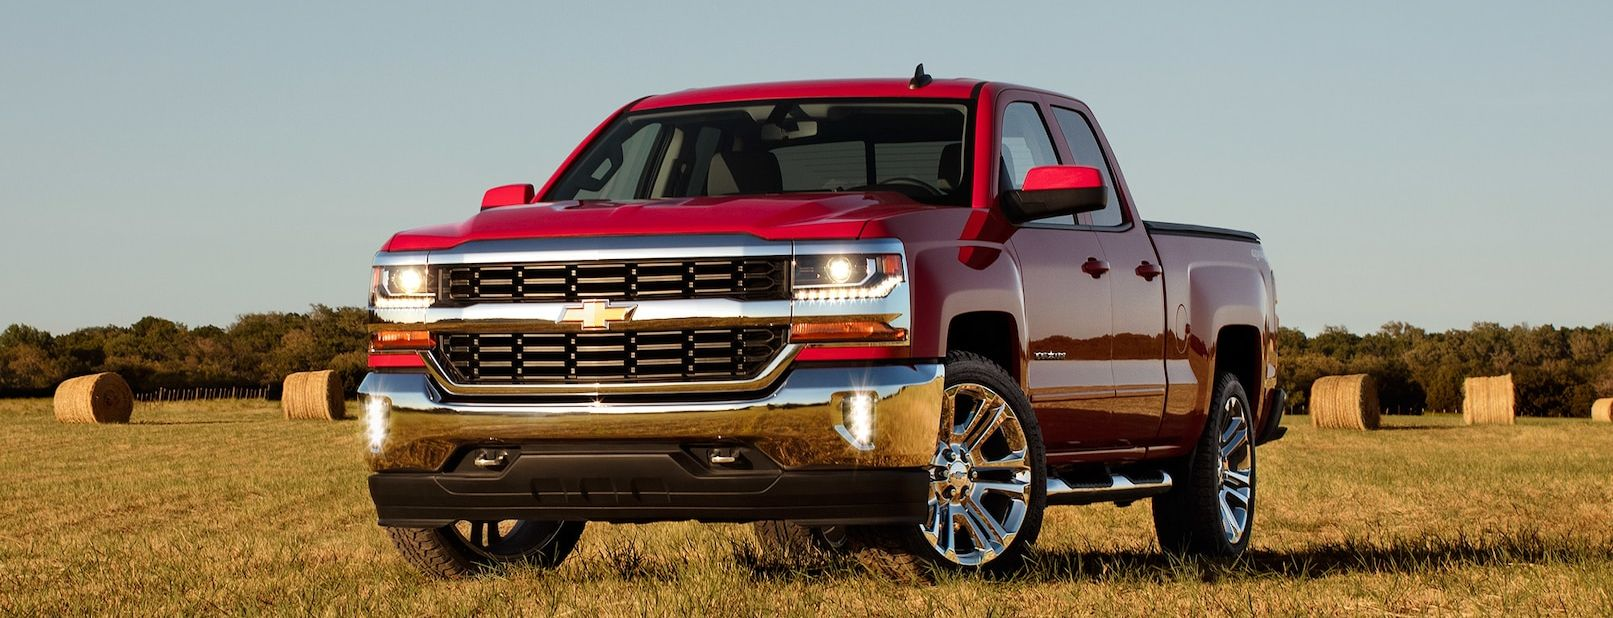 Used Chevrolet Silverado for Sale in Youngstown, OH